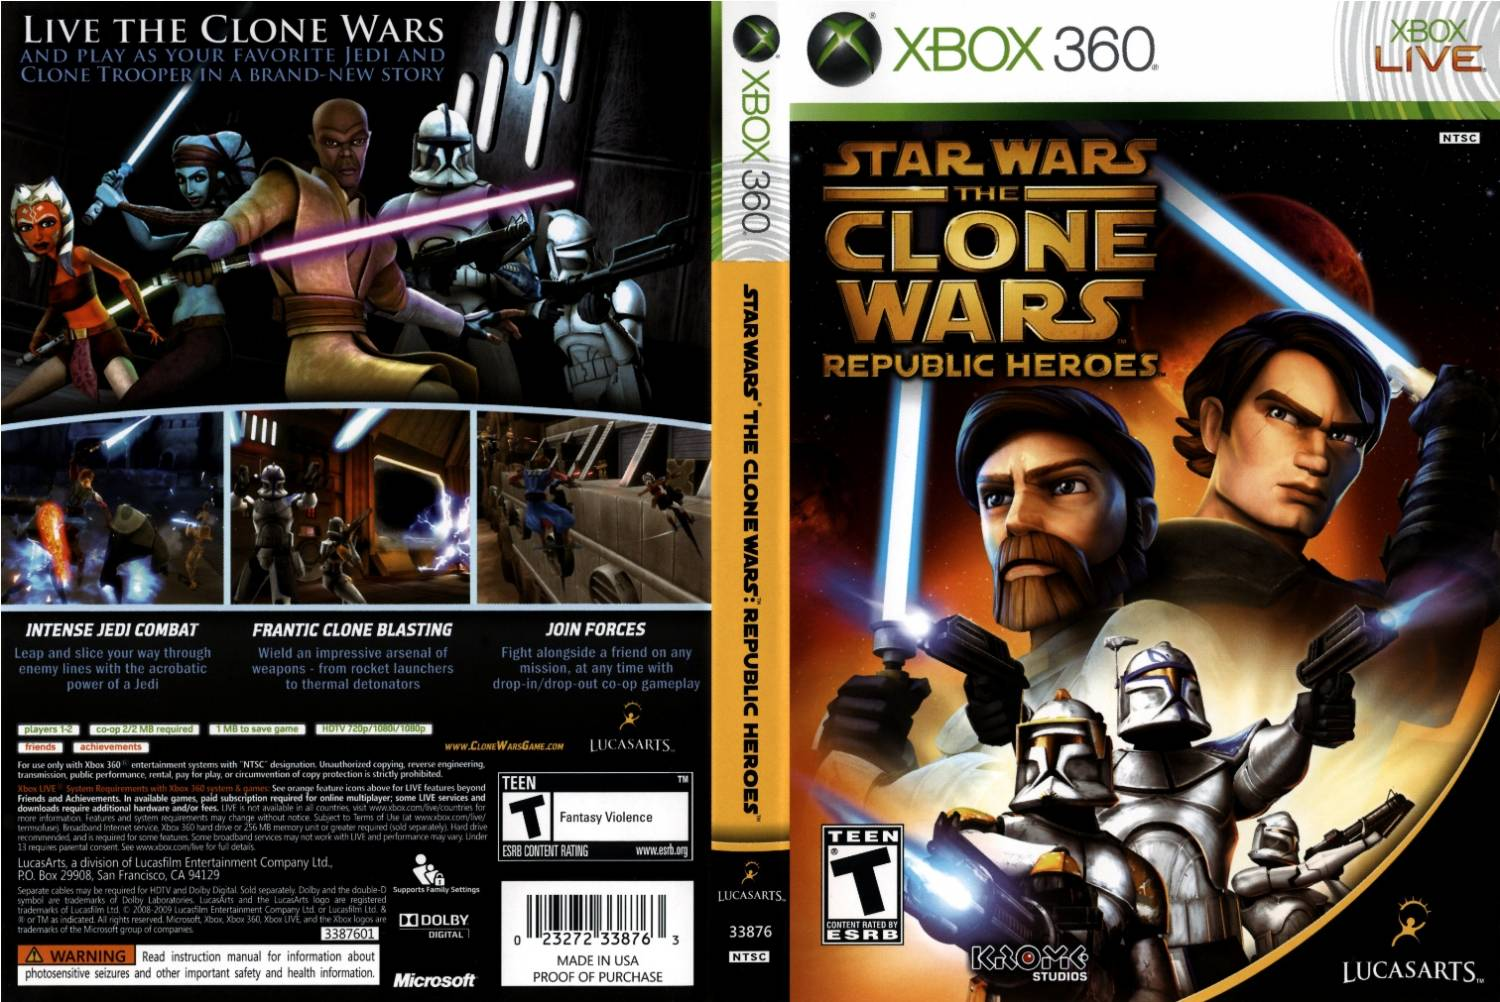 Star wars the clone wars porn games naked beauty chick